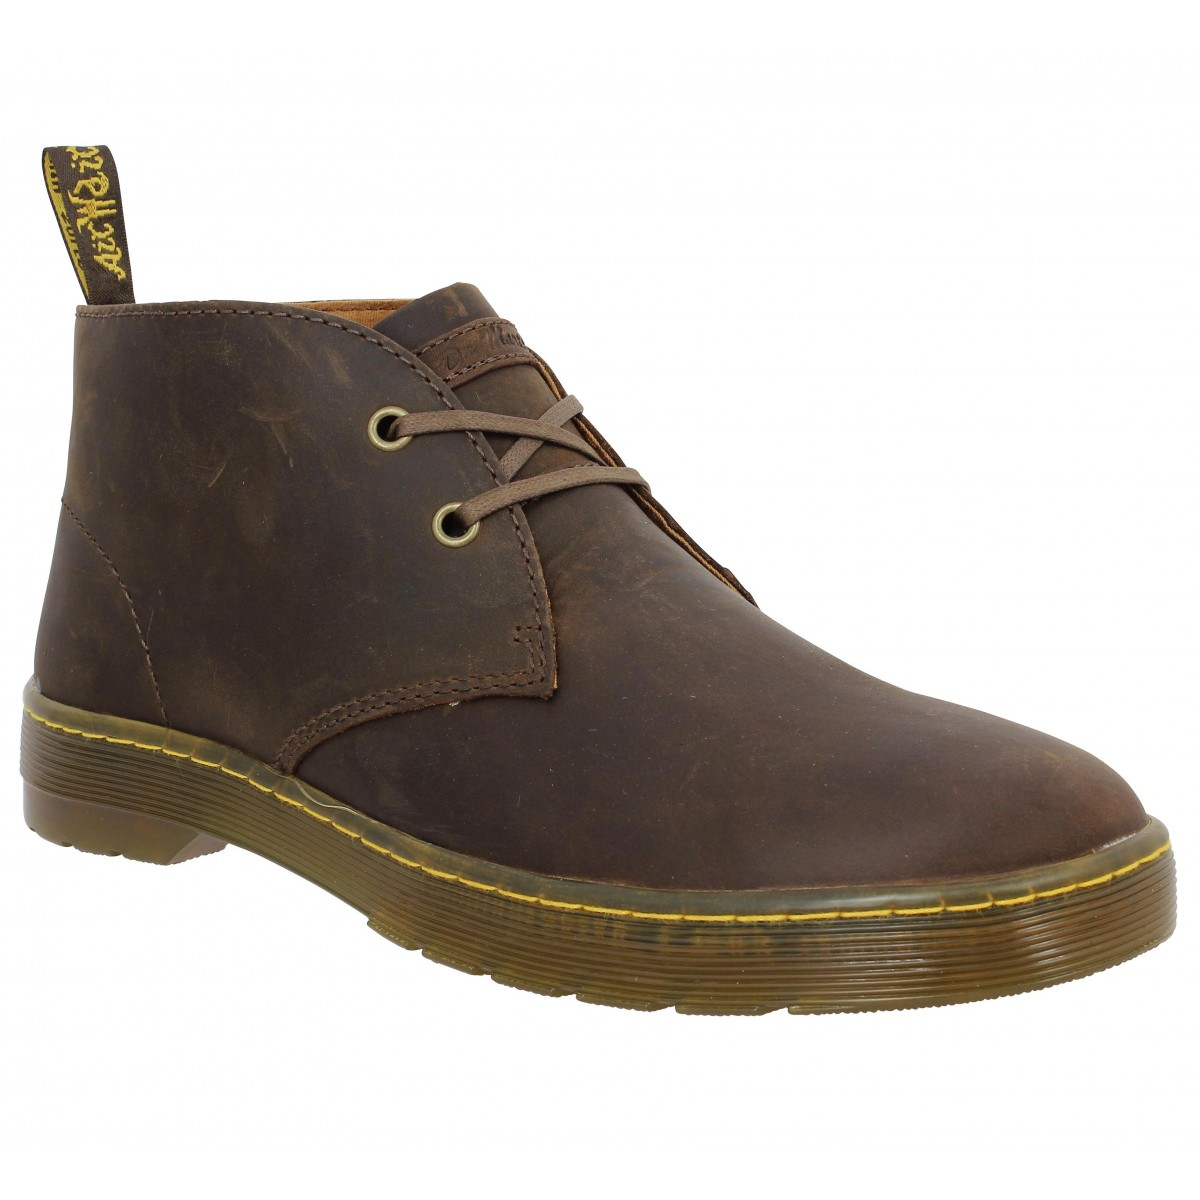 Bottines Dr MARTENS Cabrillo Marron